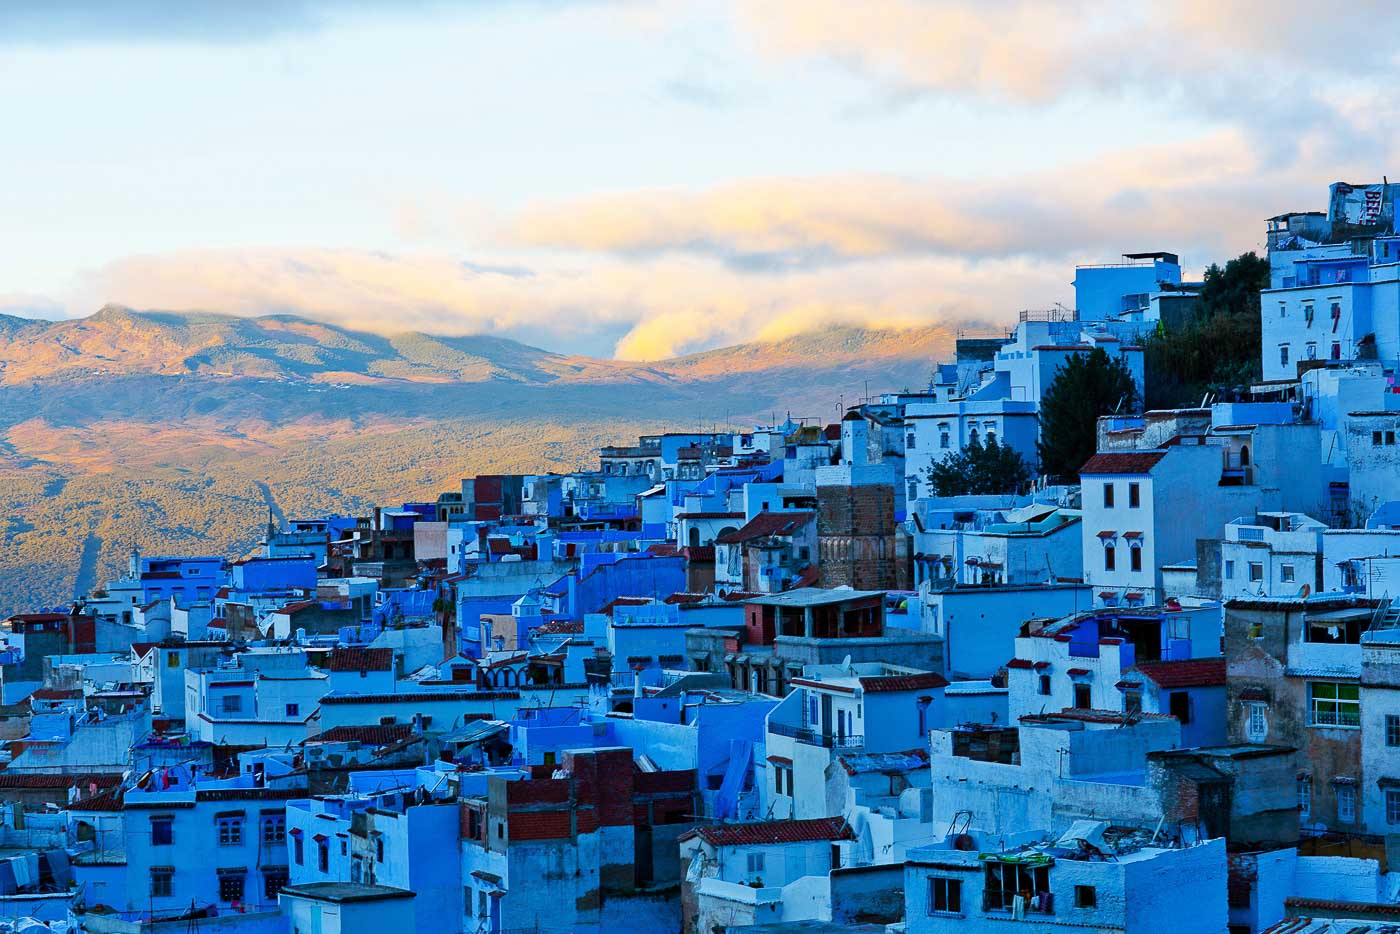 Colourful Cities by Zayah World - Chefchaouen, Morocco